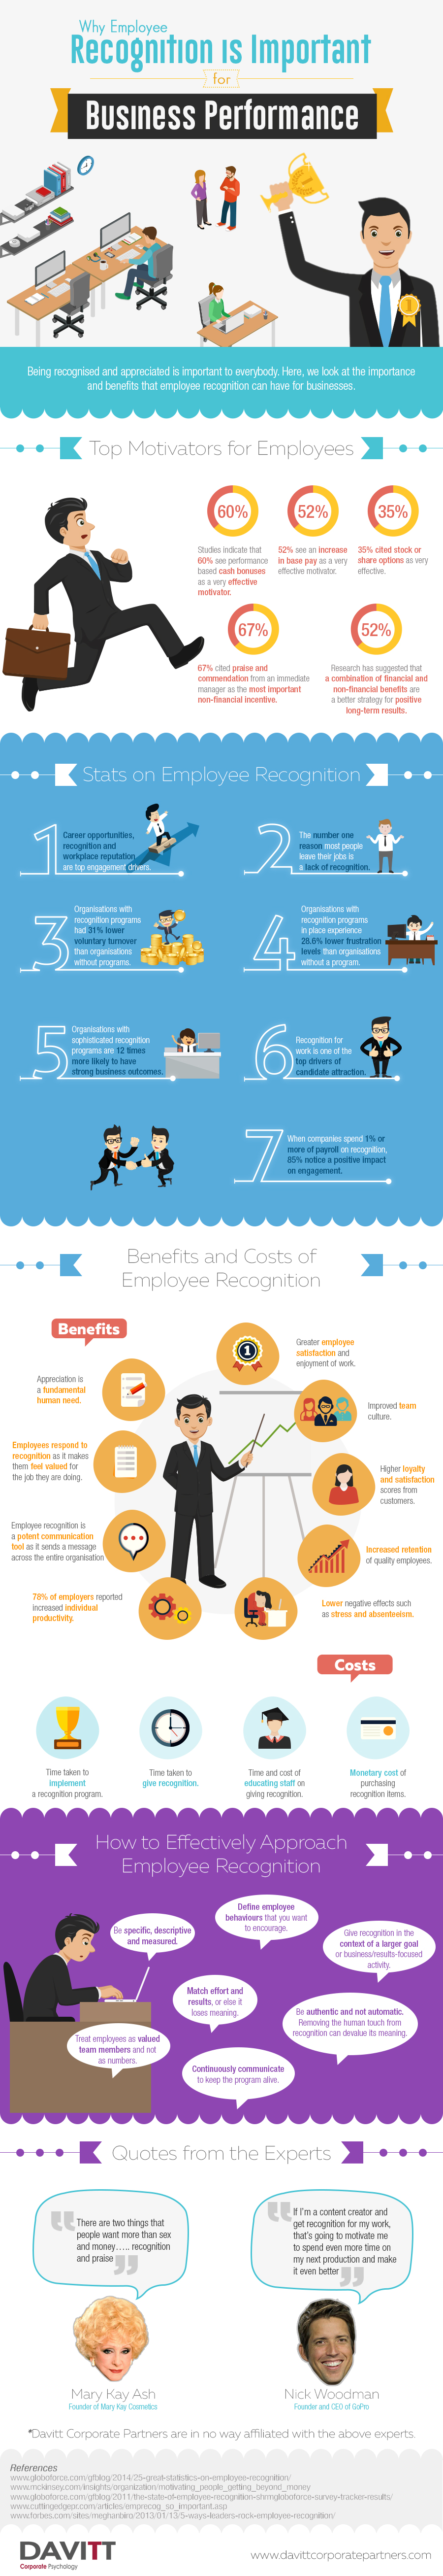 Why Employee Recognition is Important for Business Performance – Infographic